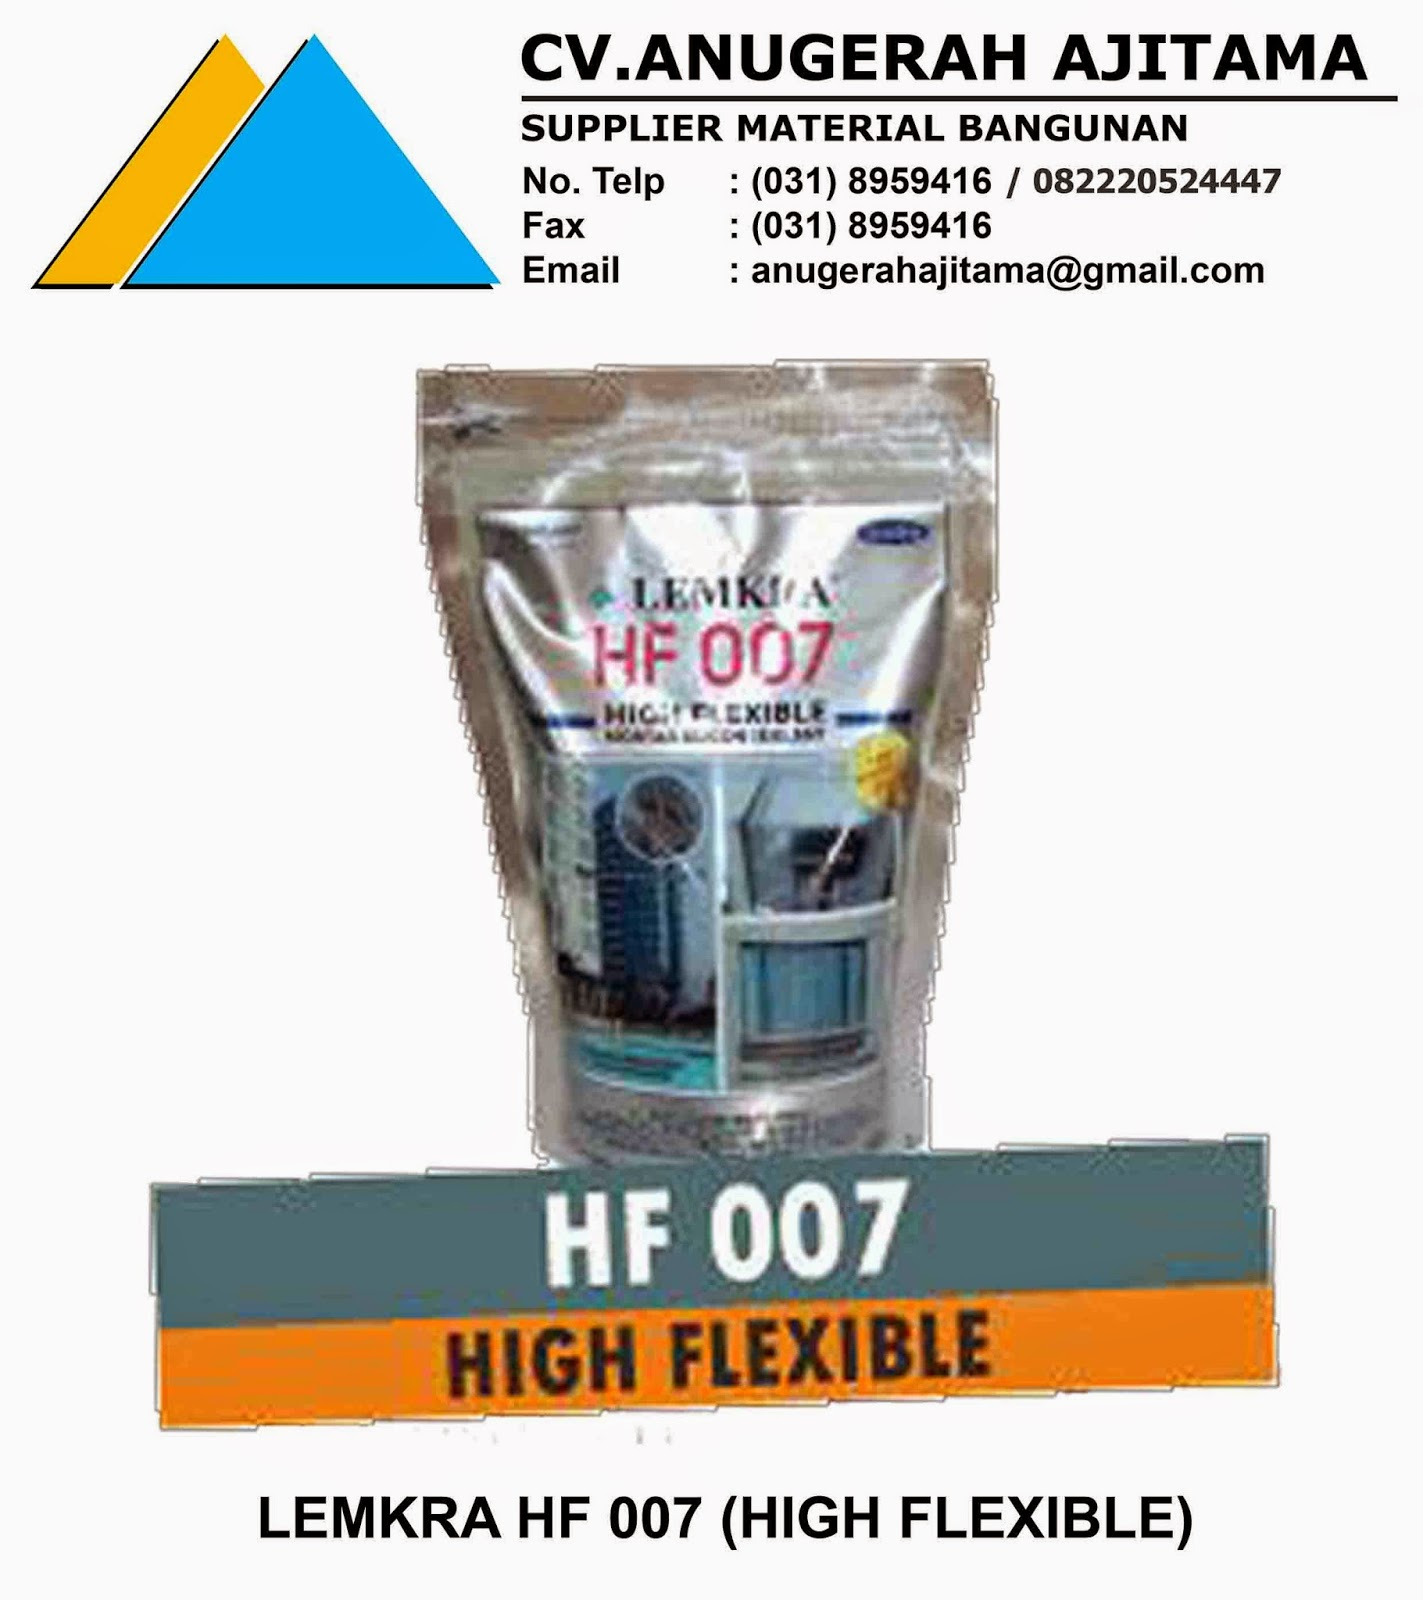 LEMKRA HF 007 (HIGH FLEXIBLE)